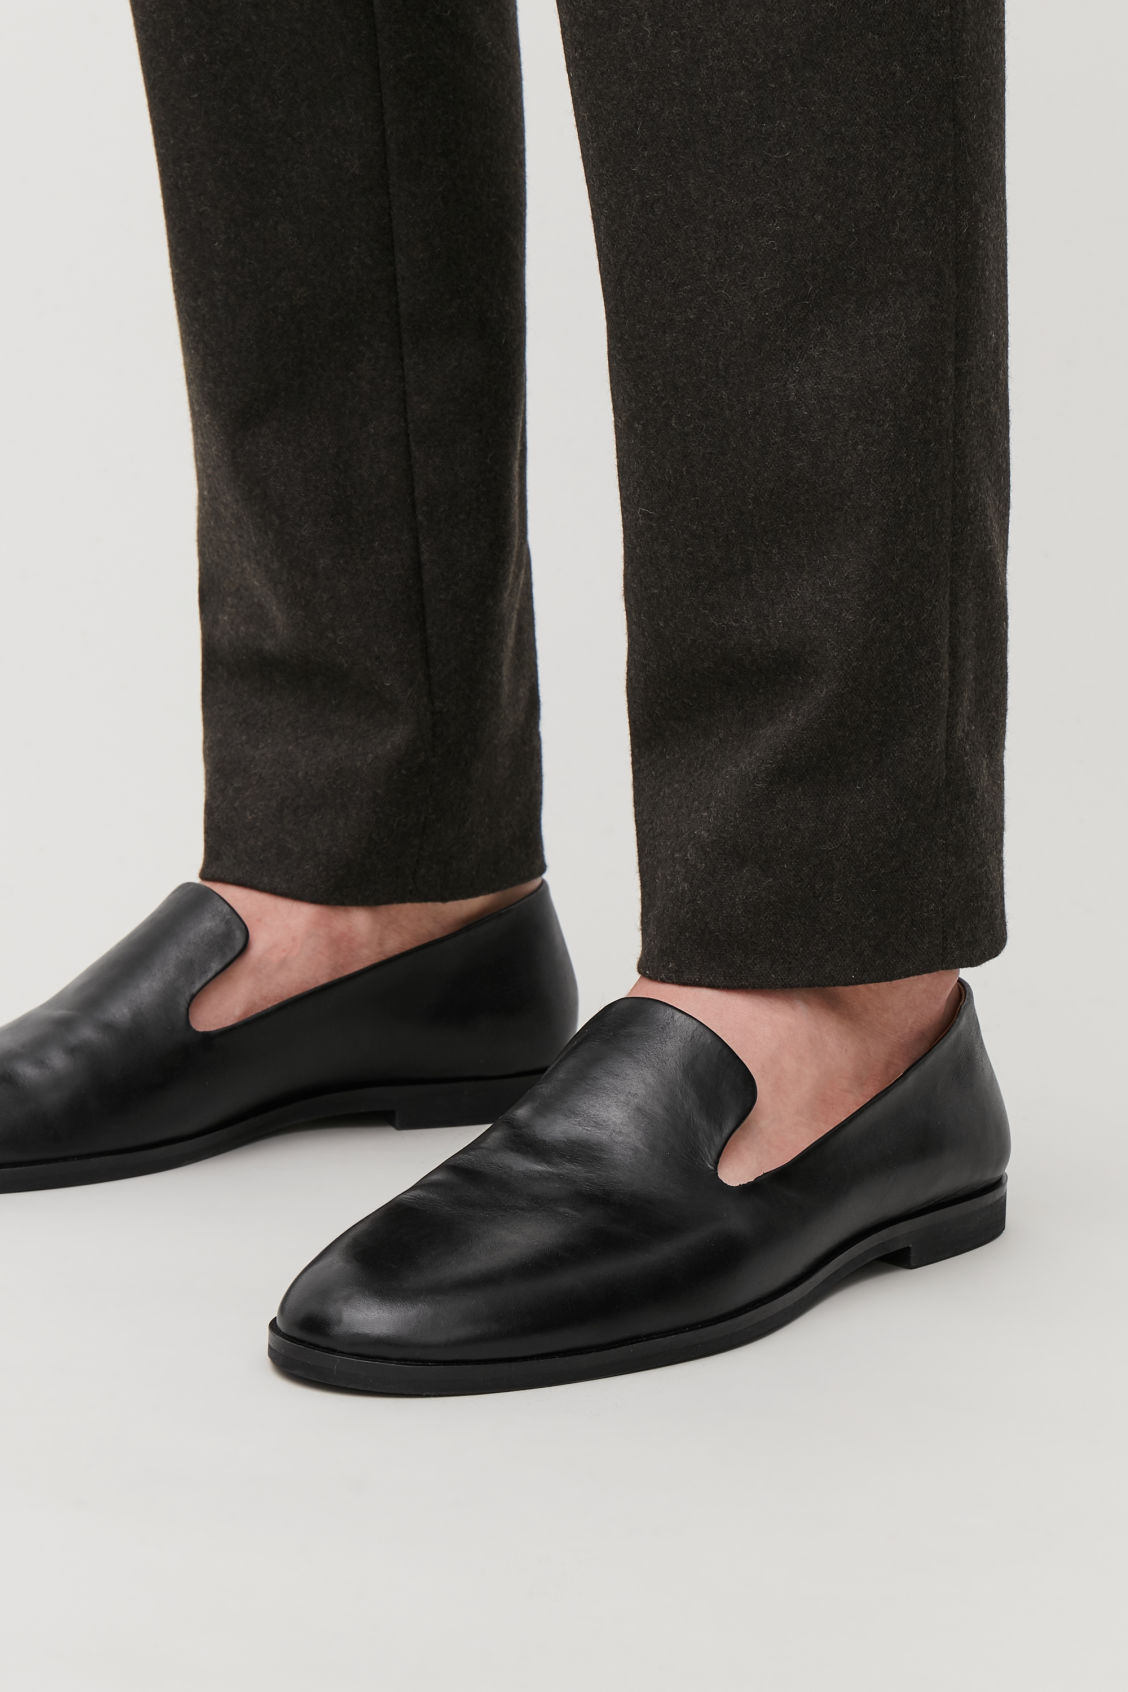 Detailed image of Cos leather slip-on shoes in black